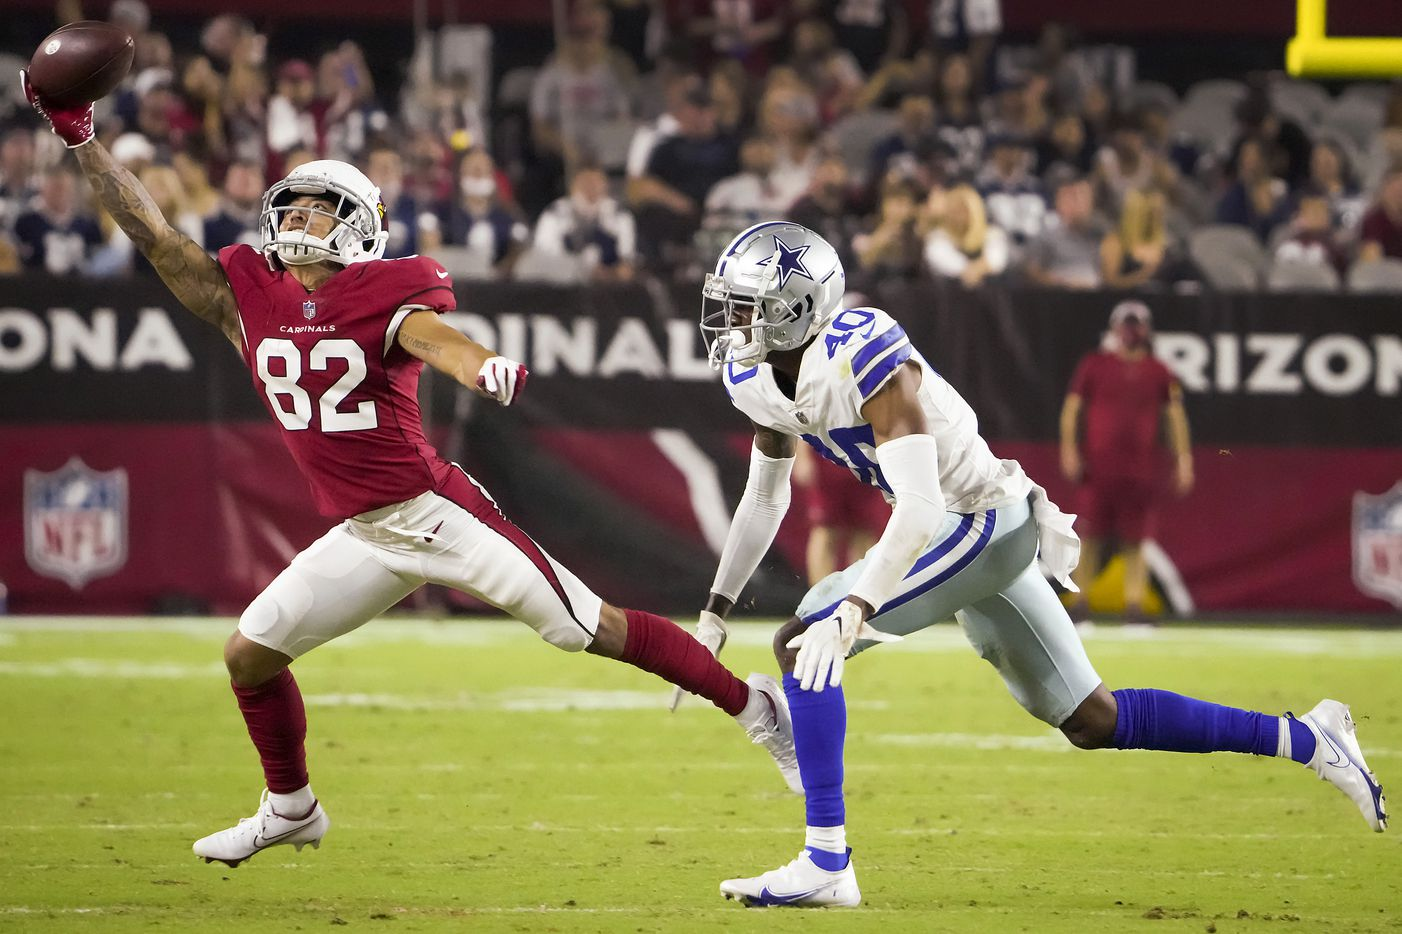 Arizona Cardinals wide receiver Andre Baccellia (82) has a pass go off his fingers as Dallas Cowboys cornerback Nahshon Wright (40) defends during the second half of a preseason NFL football game at State Farm Stadium on Friday, Aug. 13, 2021, in Glendale, Ariz.